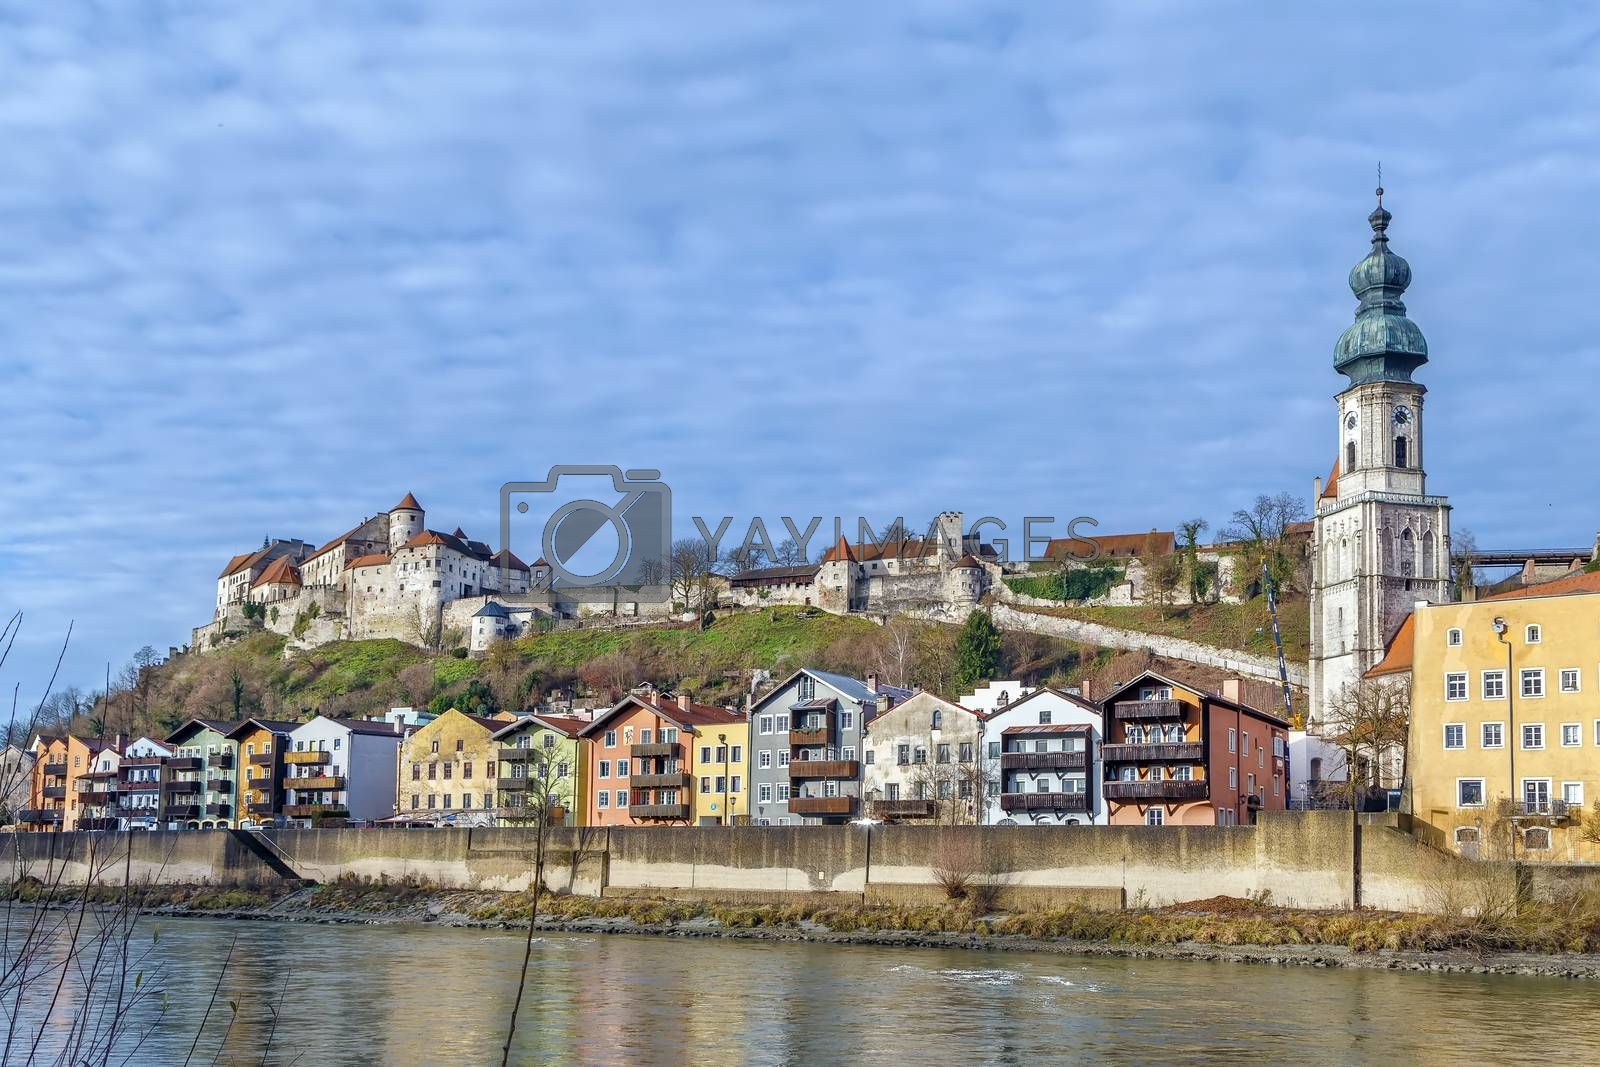 View of Burghausen from Salzach river, Upper Bavaria, Germany